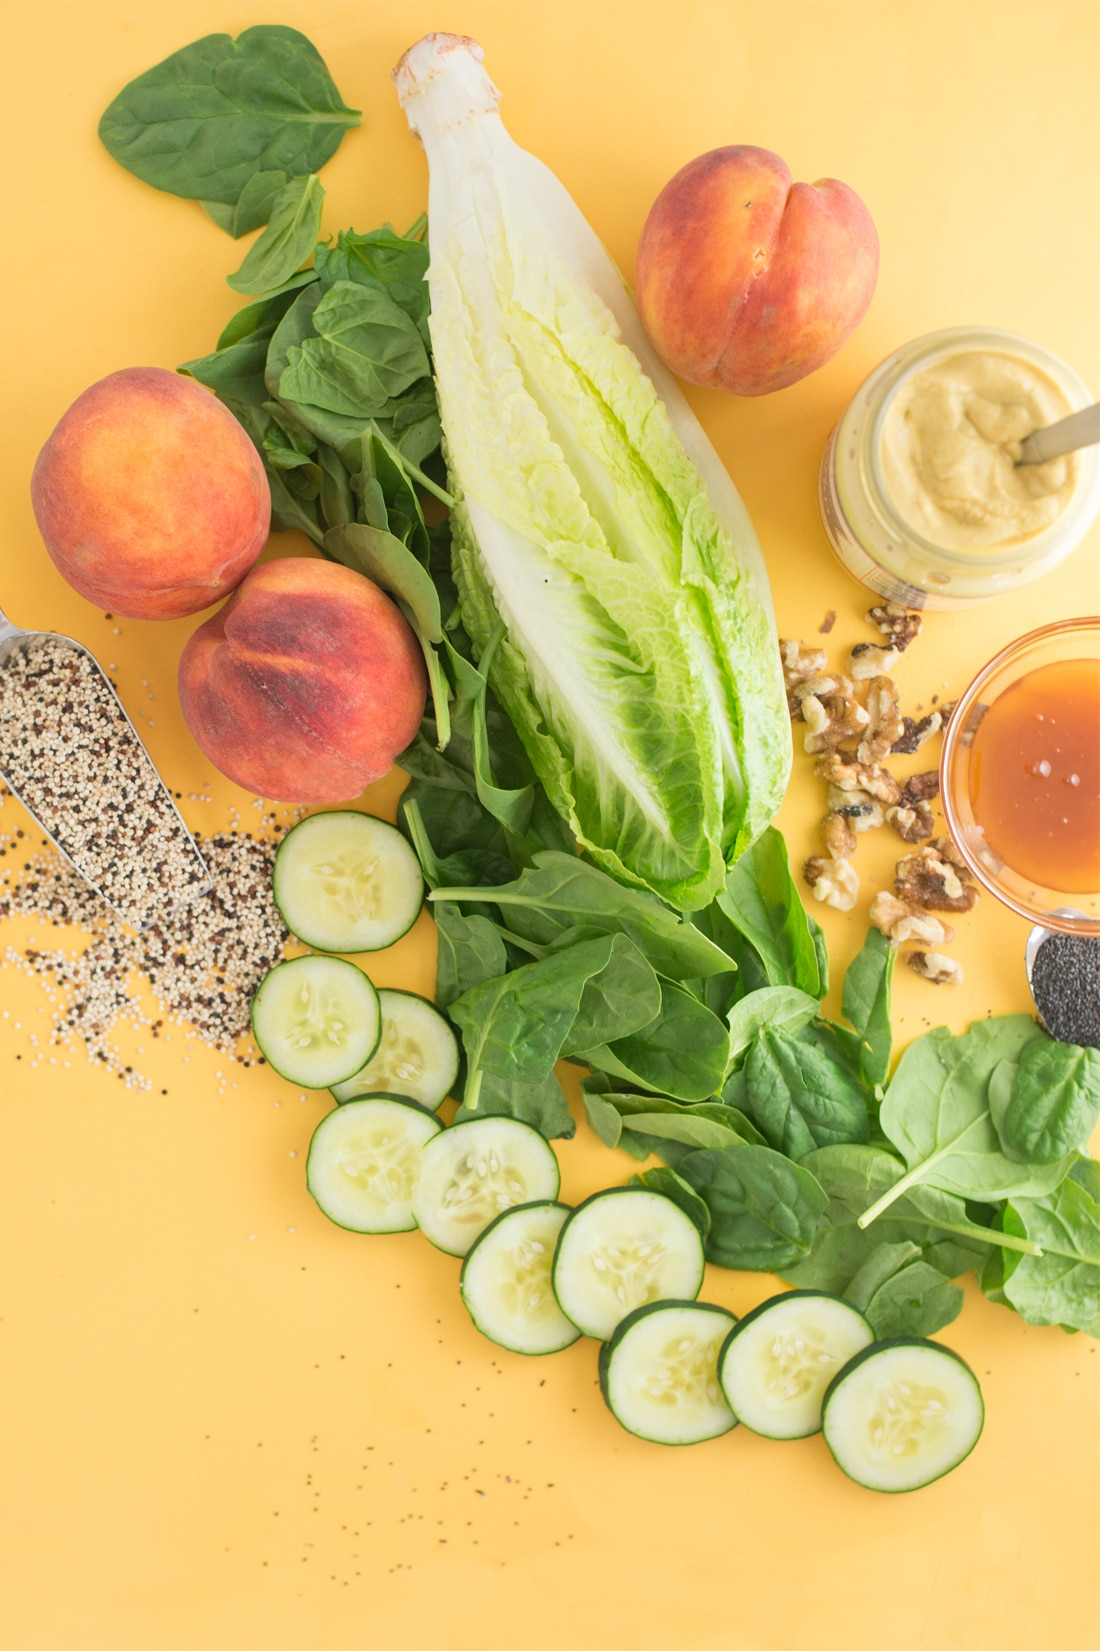 spinach, romaine, peaches, quinoa, walnuts, poppy seeds, honey, and mustard on yellow background